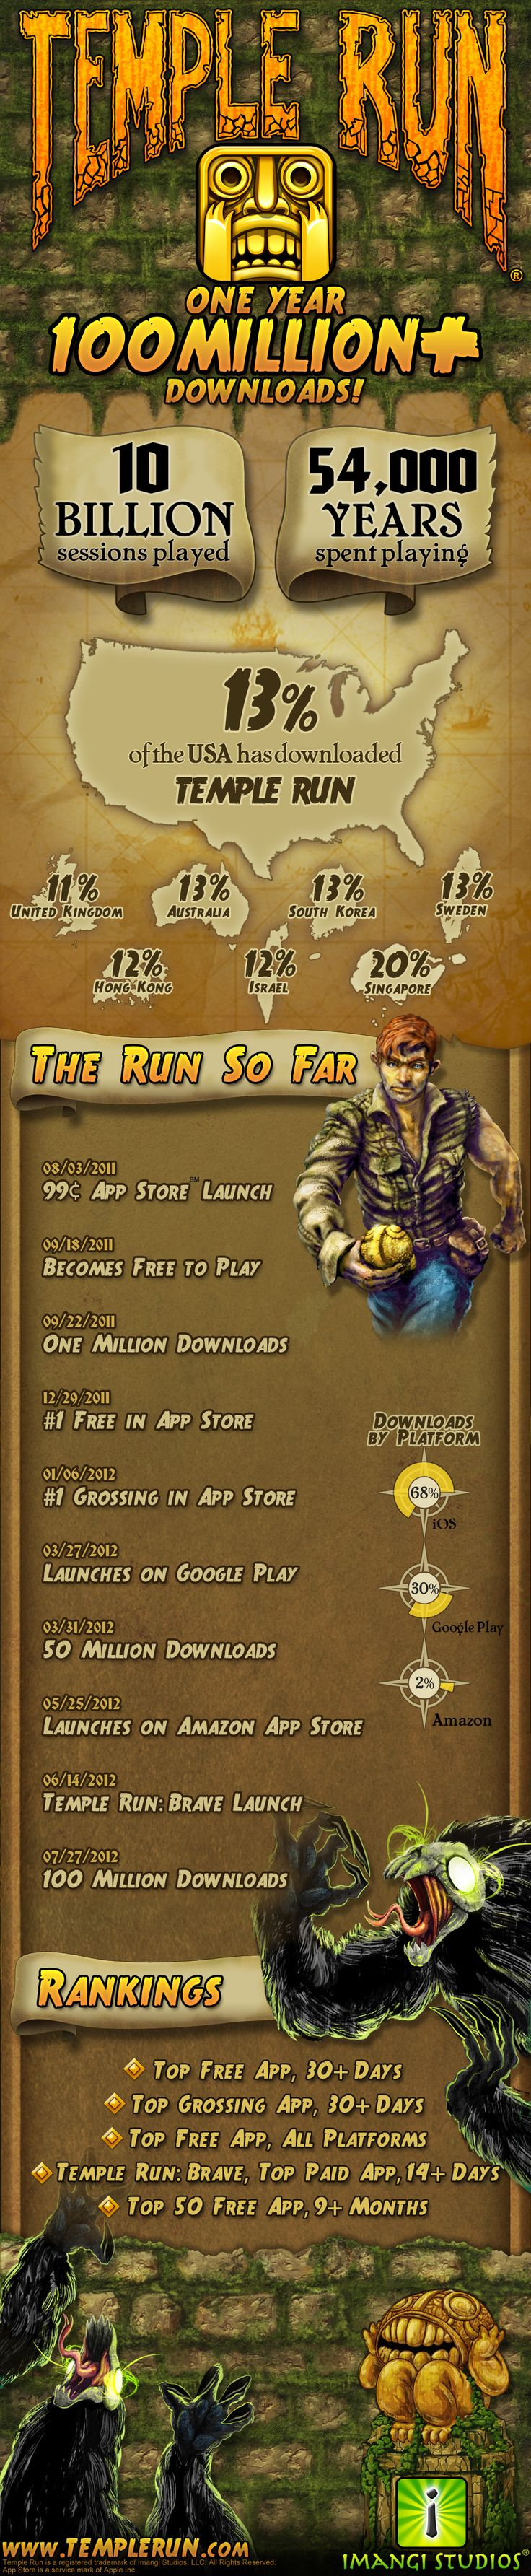 How to make an app like Temple Run #templerun #appinstruct